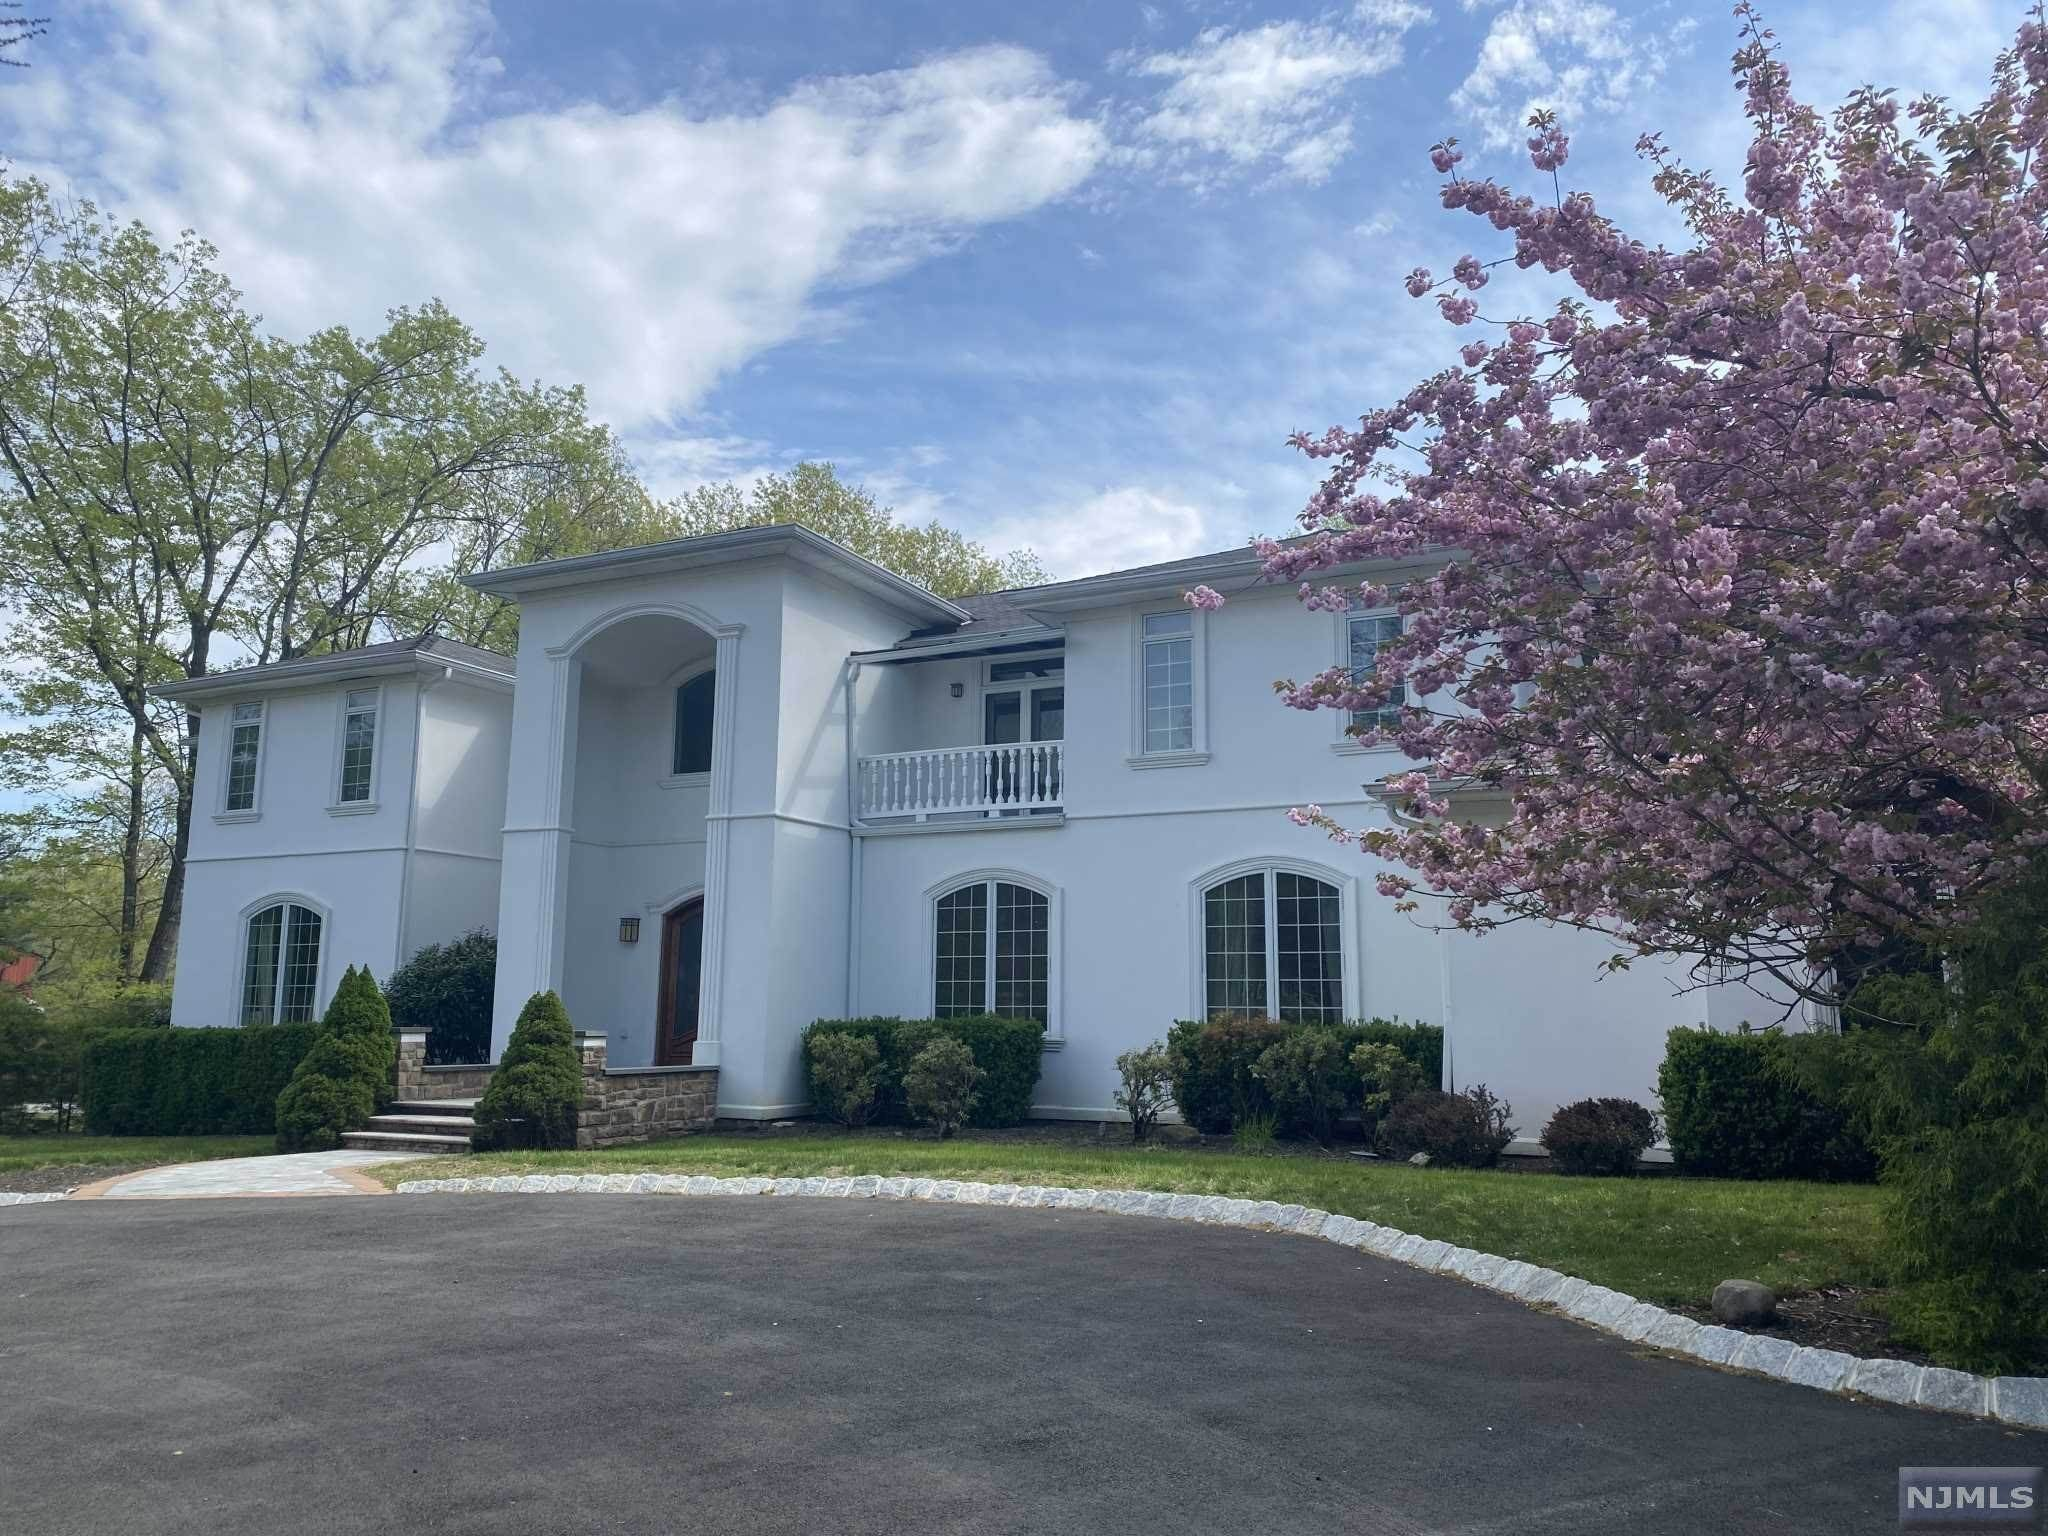 Single Family Home for Sale at 26 Sunrise Lane Upper Saddle River, New Jersey, 07458 United States